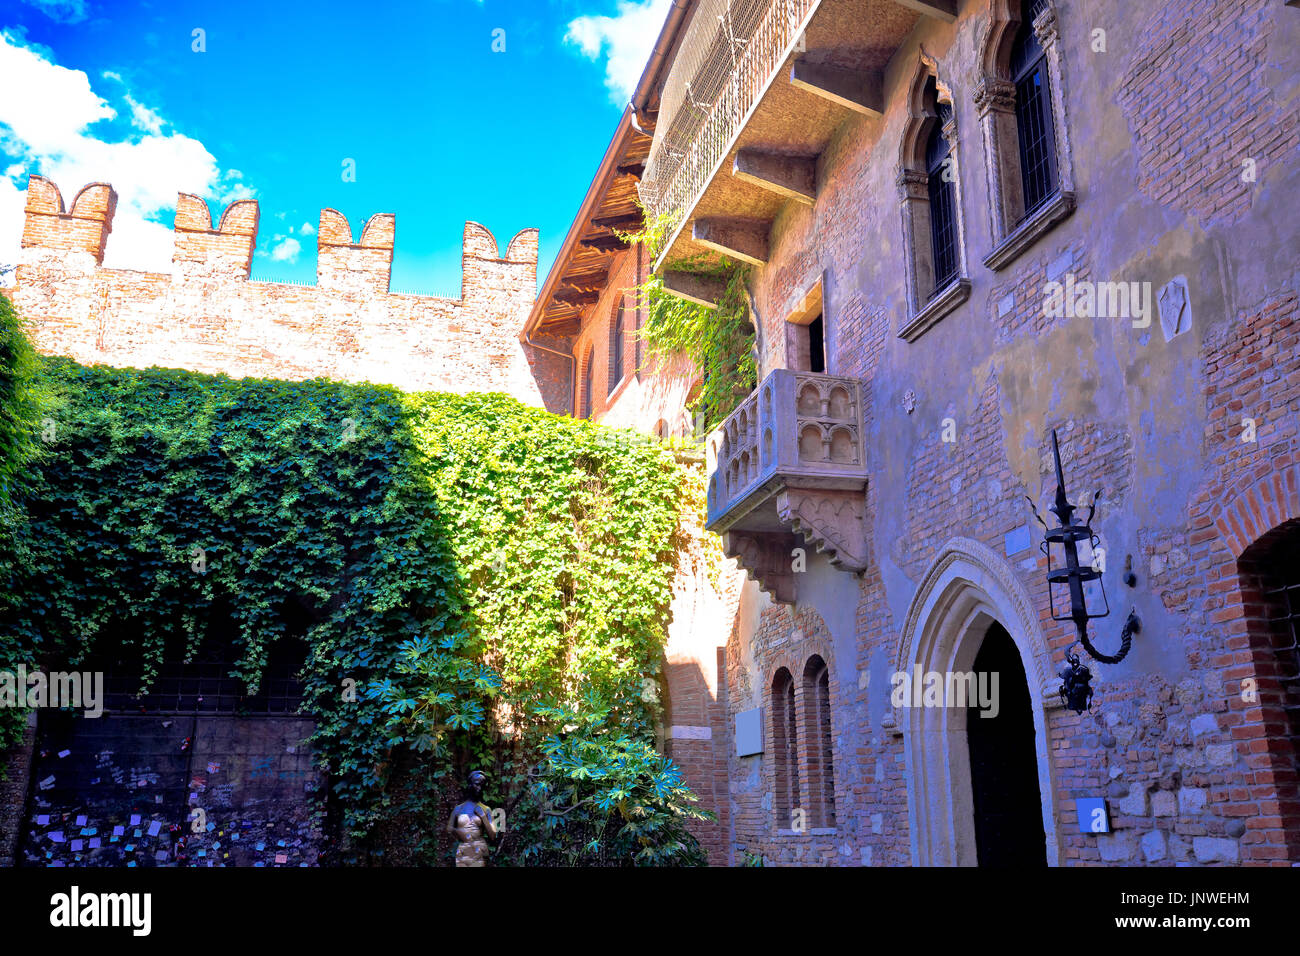 Patio and balcony of Romeo and Juliet house in Verona, Veneto region of Italy Stock Photo